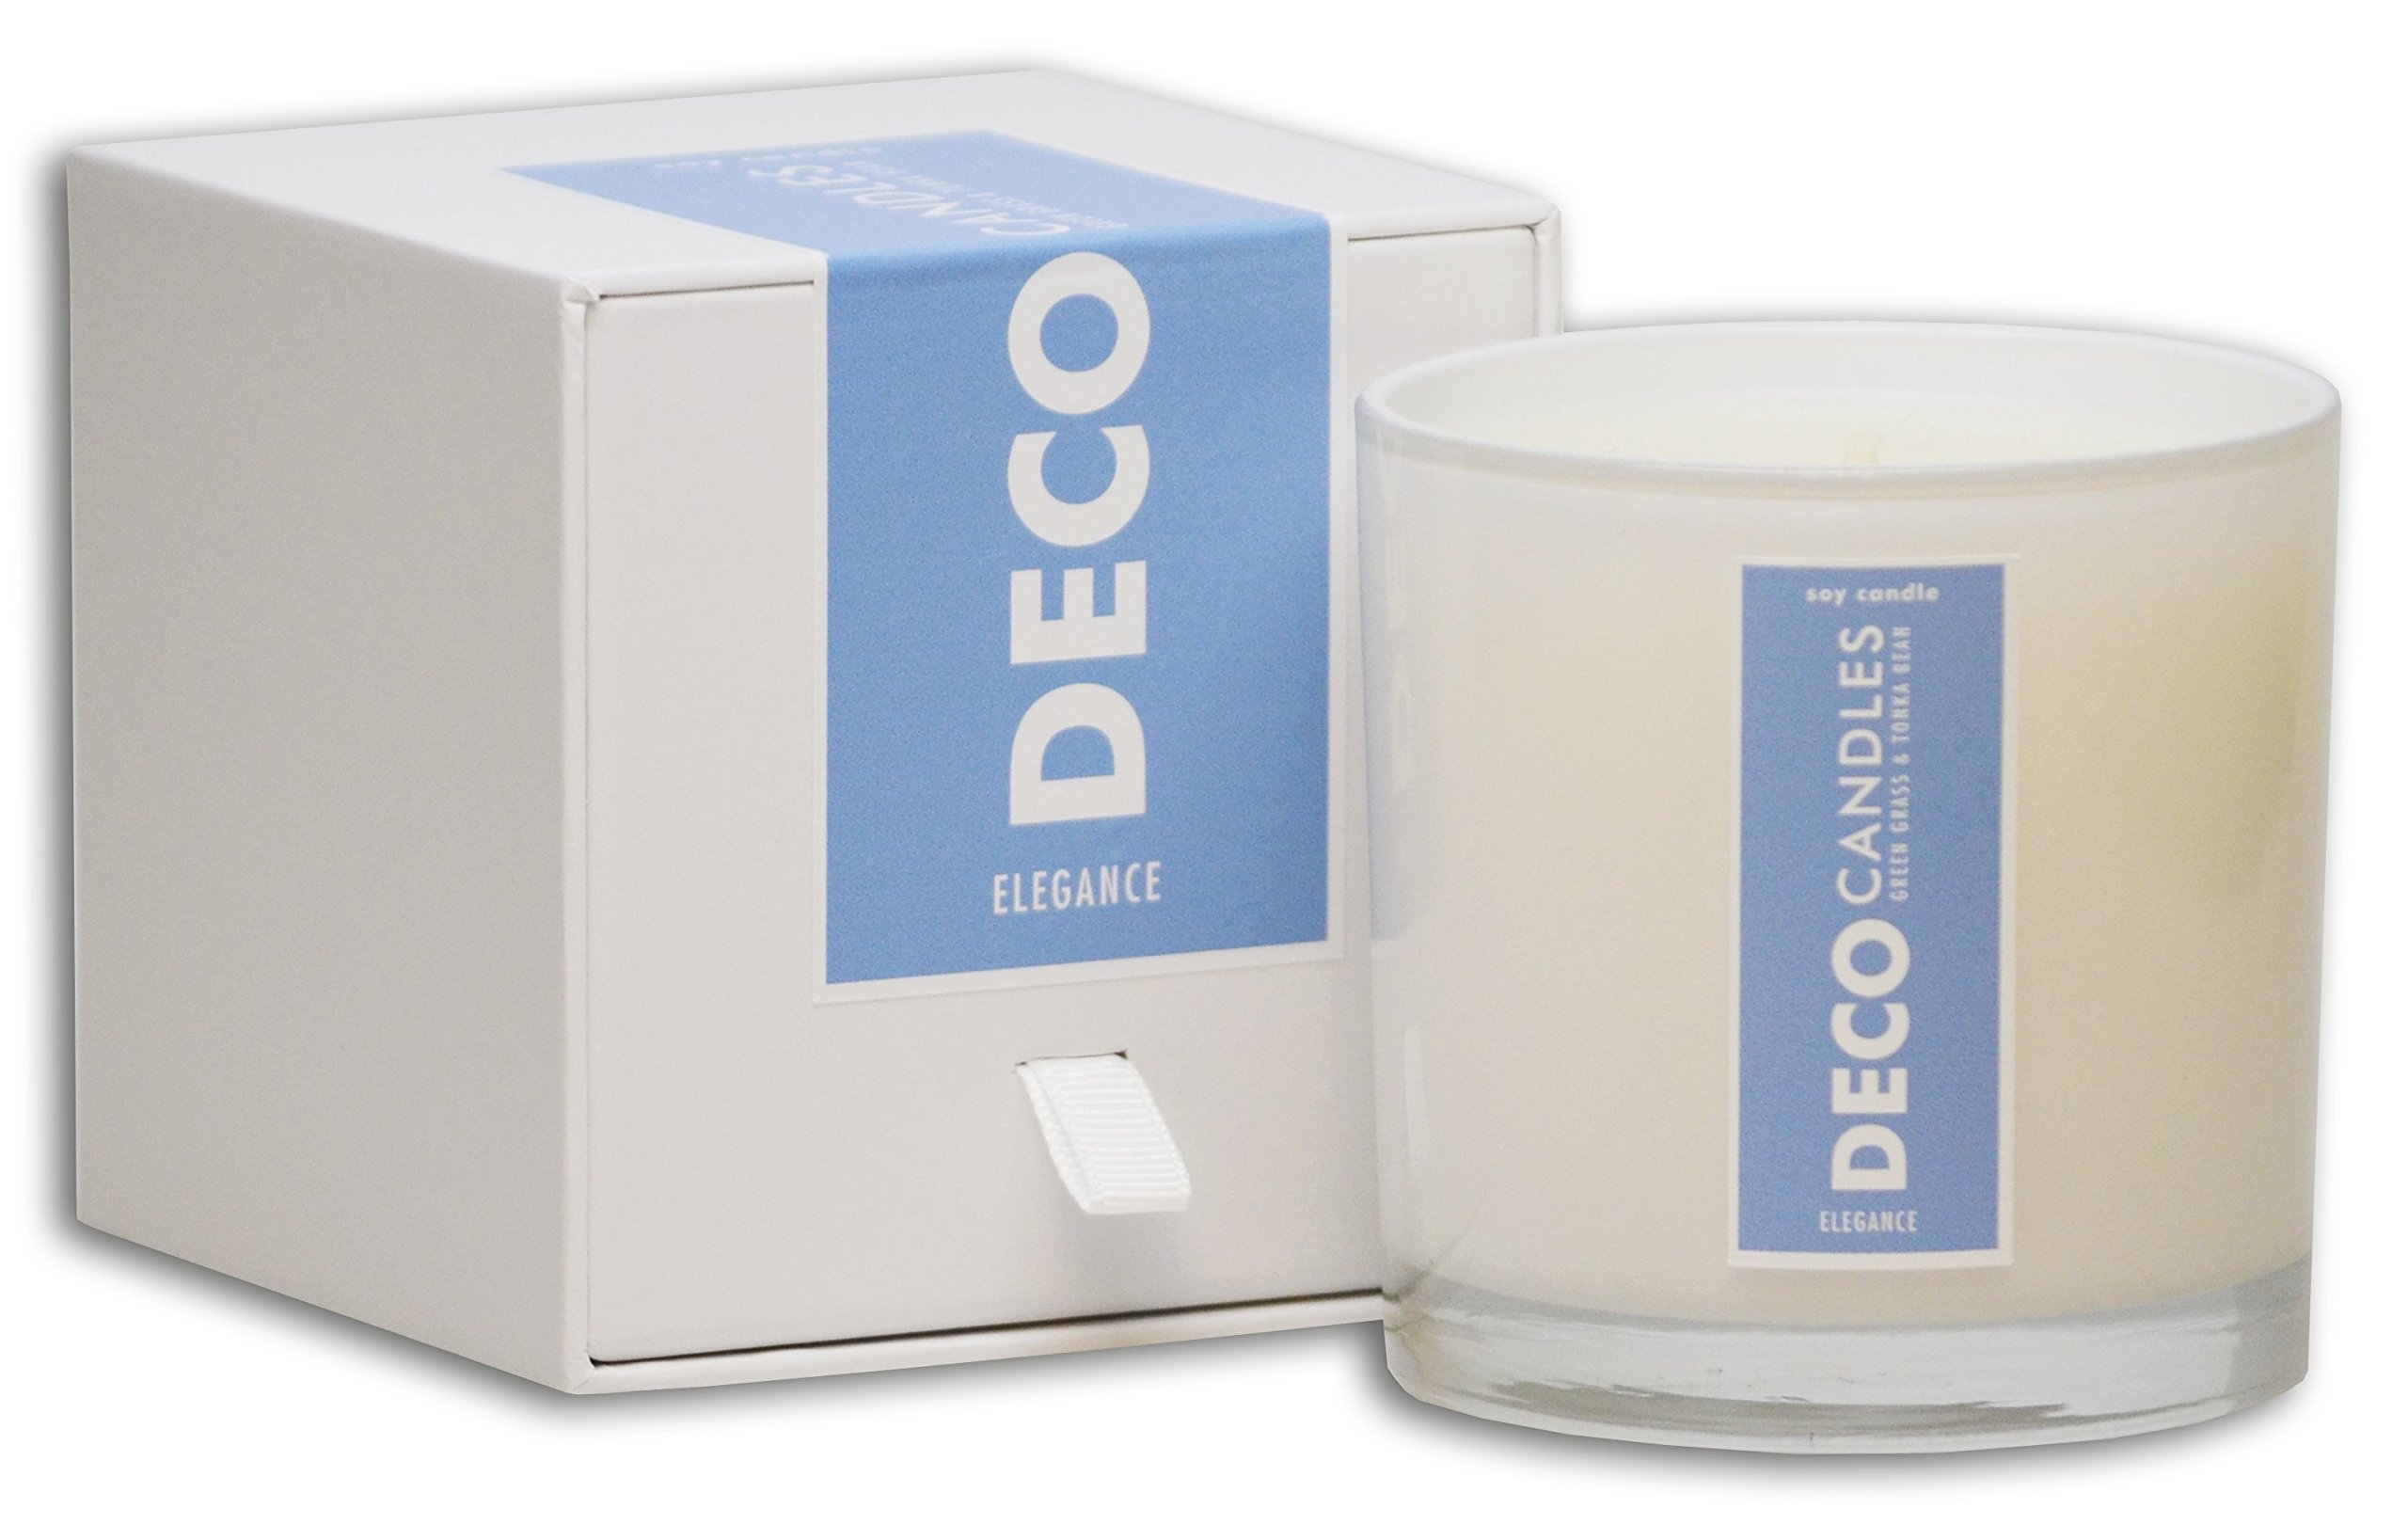 DecoCandleS | Elegance - Bergamot, Green Grass & Tonka Bean - Highly Scented Candle - Long Lasting - Hand poured in the USA - Hotel Inspired Collection - 9 Oz.